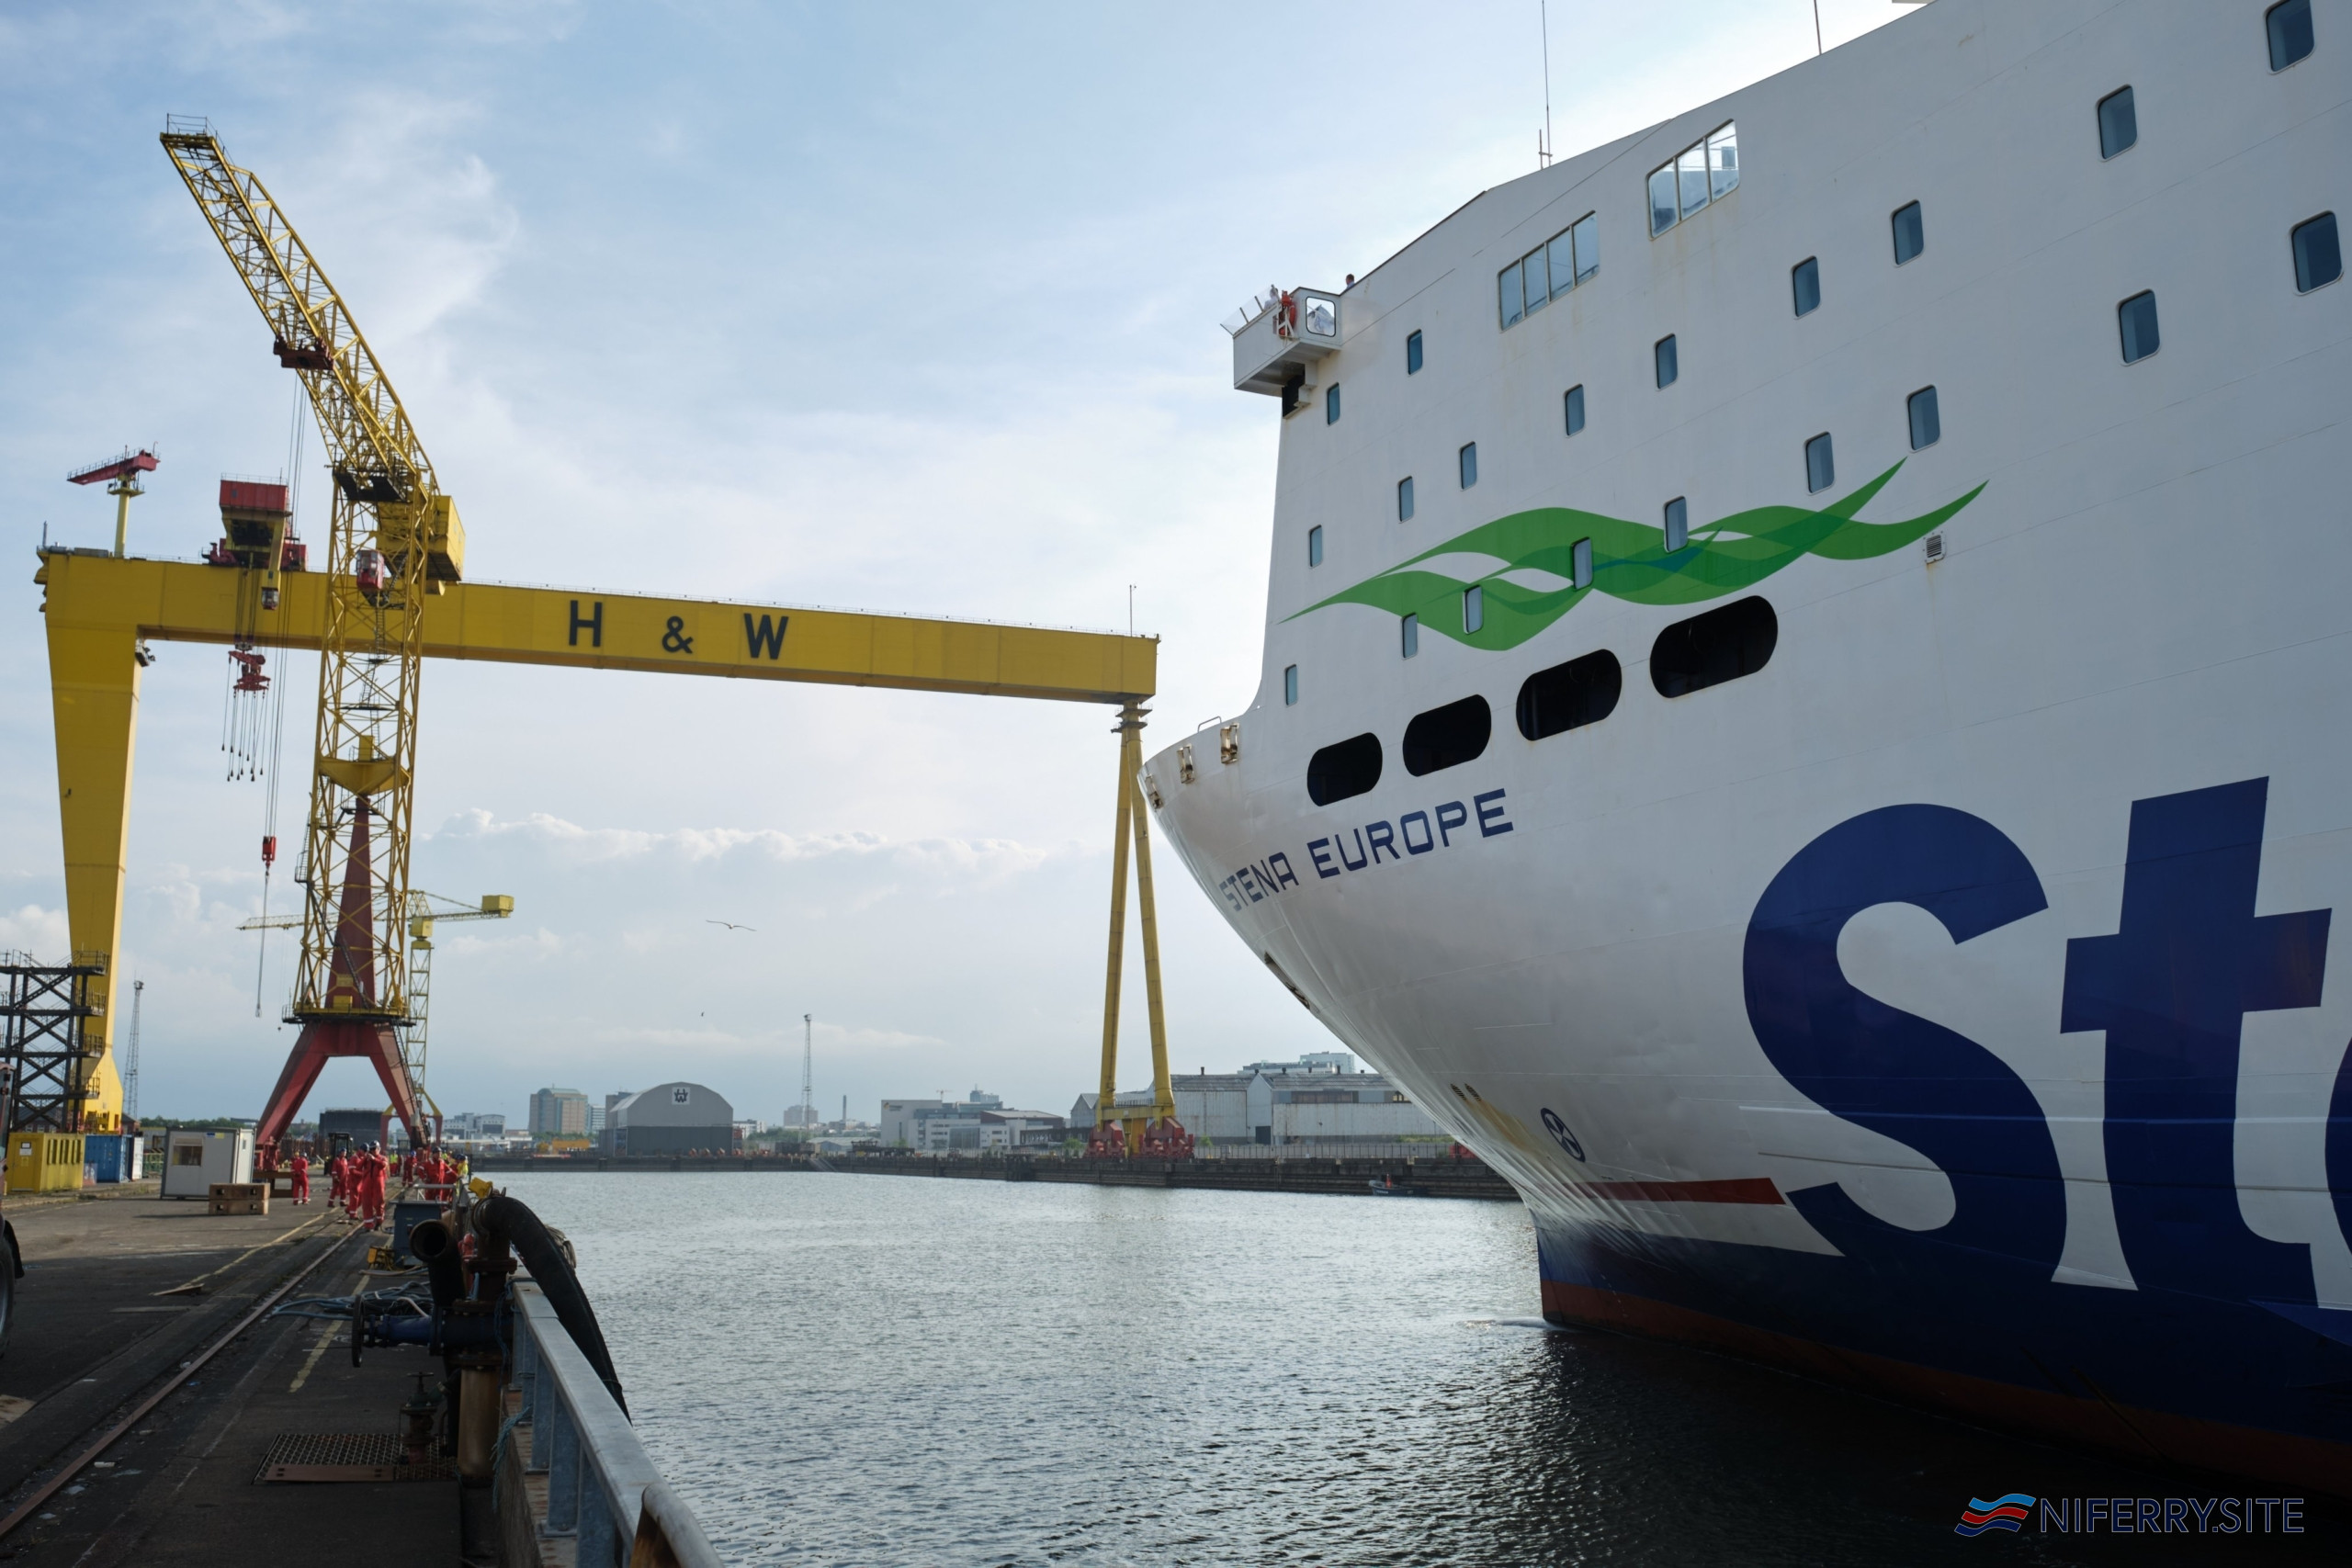 STENA EUROPE arrives at Harland & Wolff Belfast for her 2020 dry docking. Stena Line.